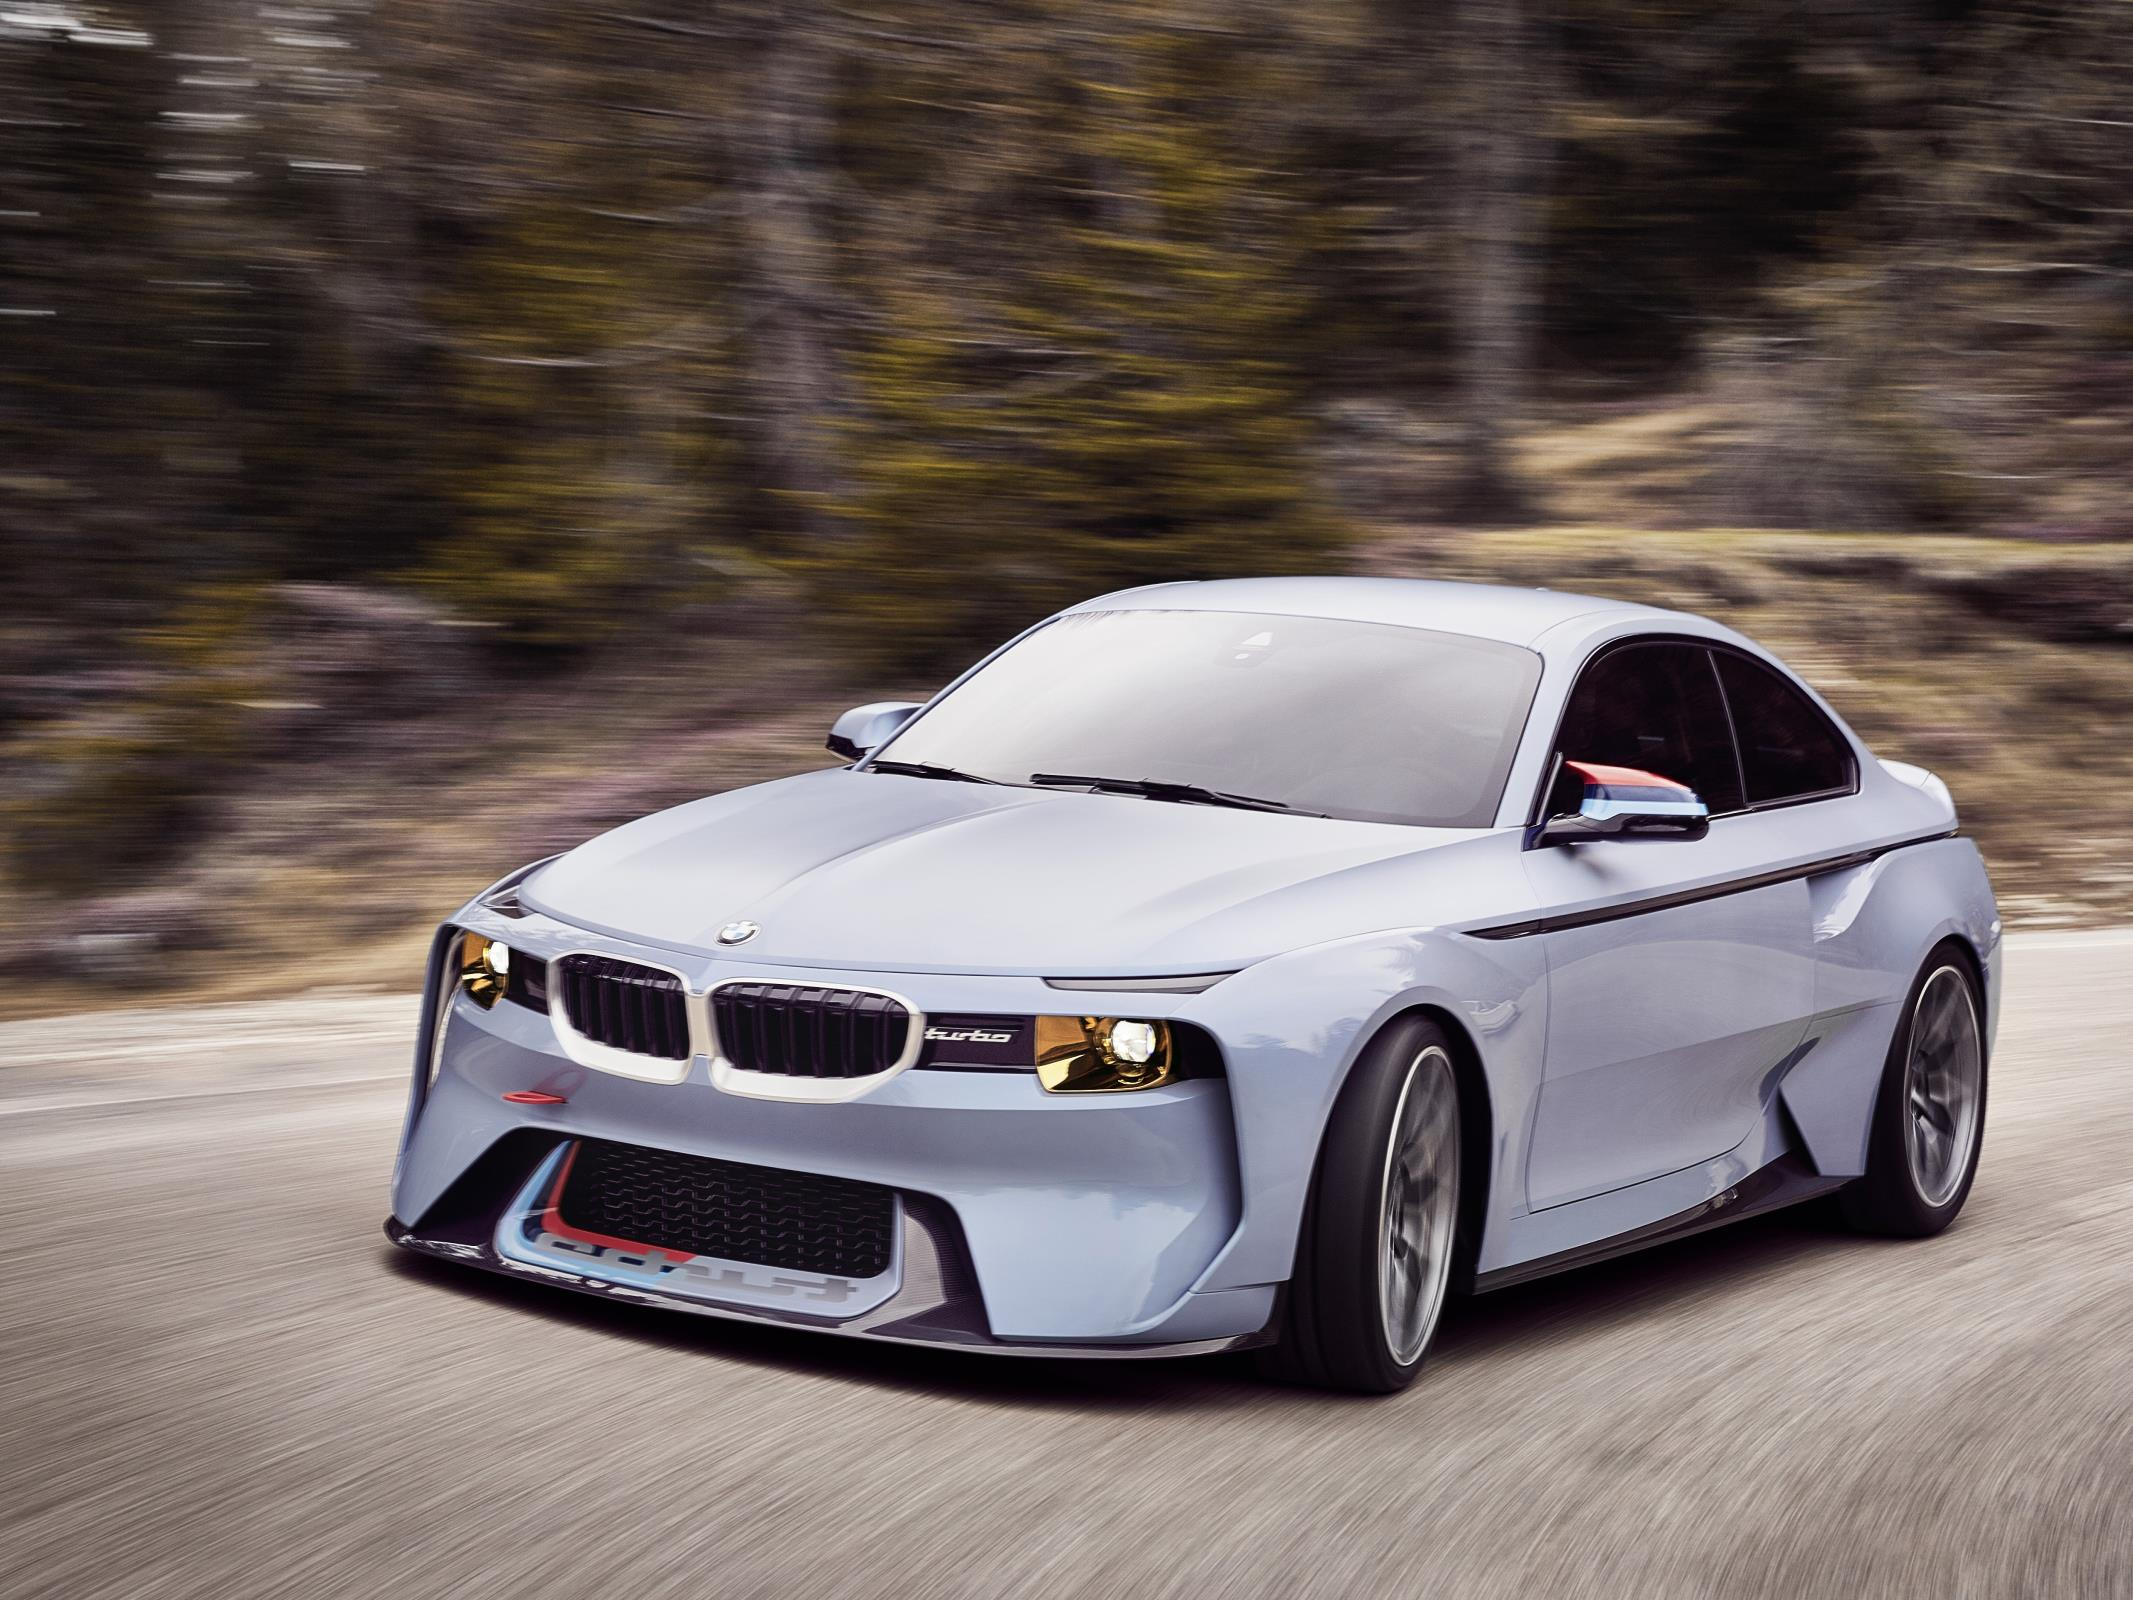 BMW at Goodwood 2016: BMW 2002 Hommage, Next 100 Concept and More